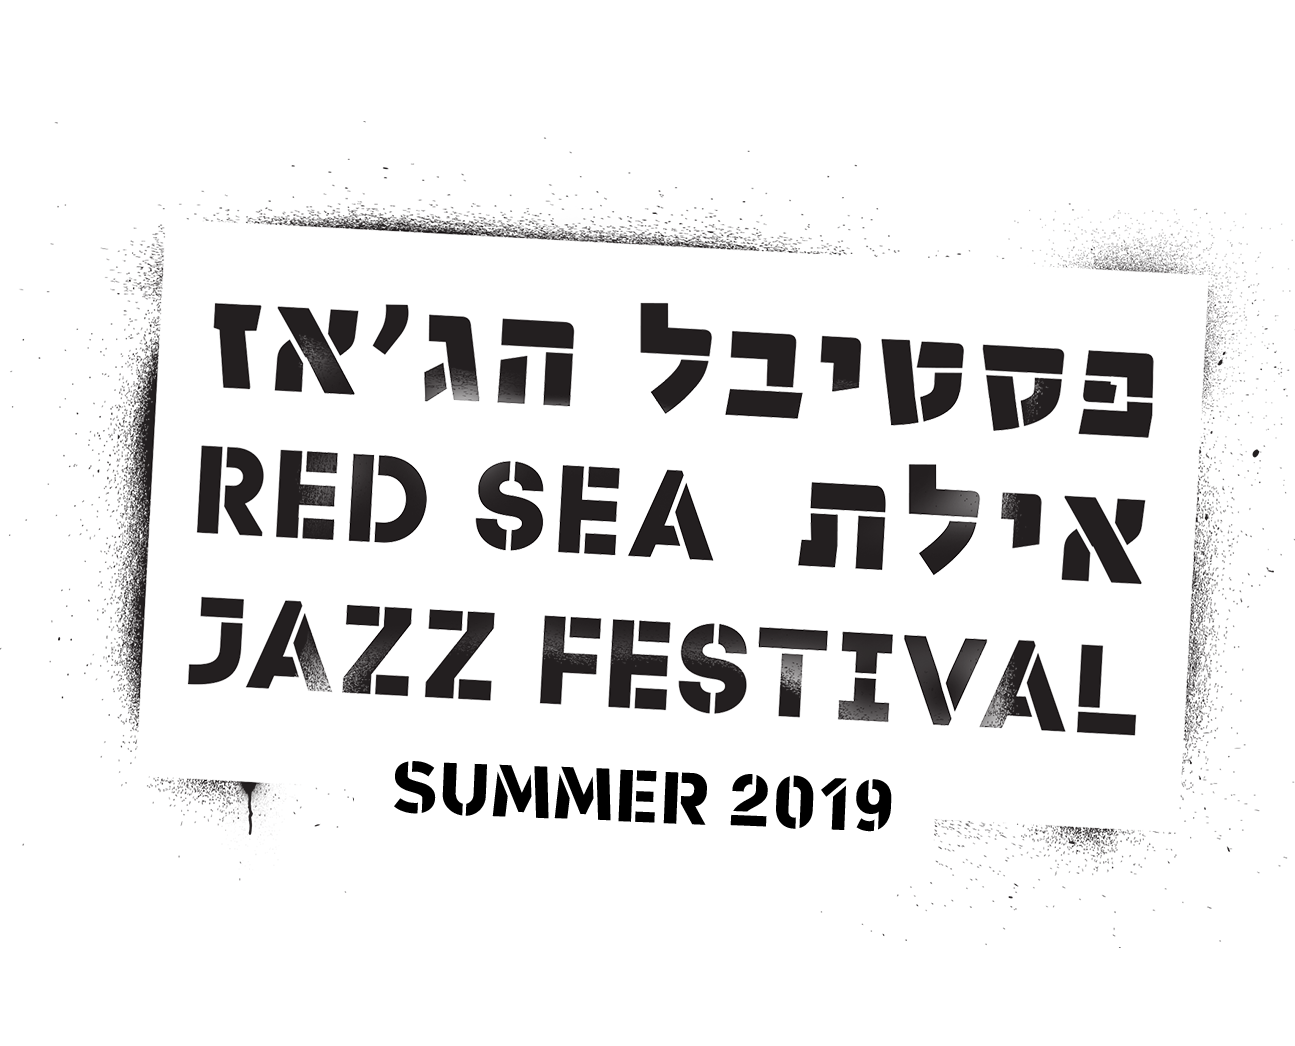 27-8-2019 / New Port Arena - פסטיבל הג'אז של אילת - Red Sea Jazz Festival